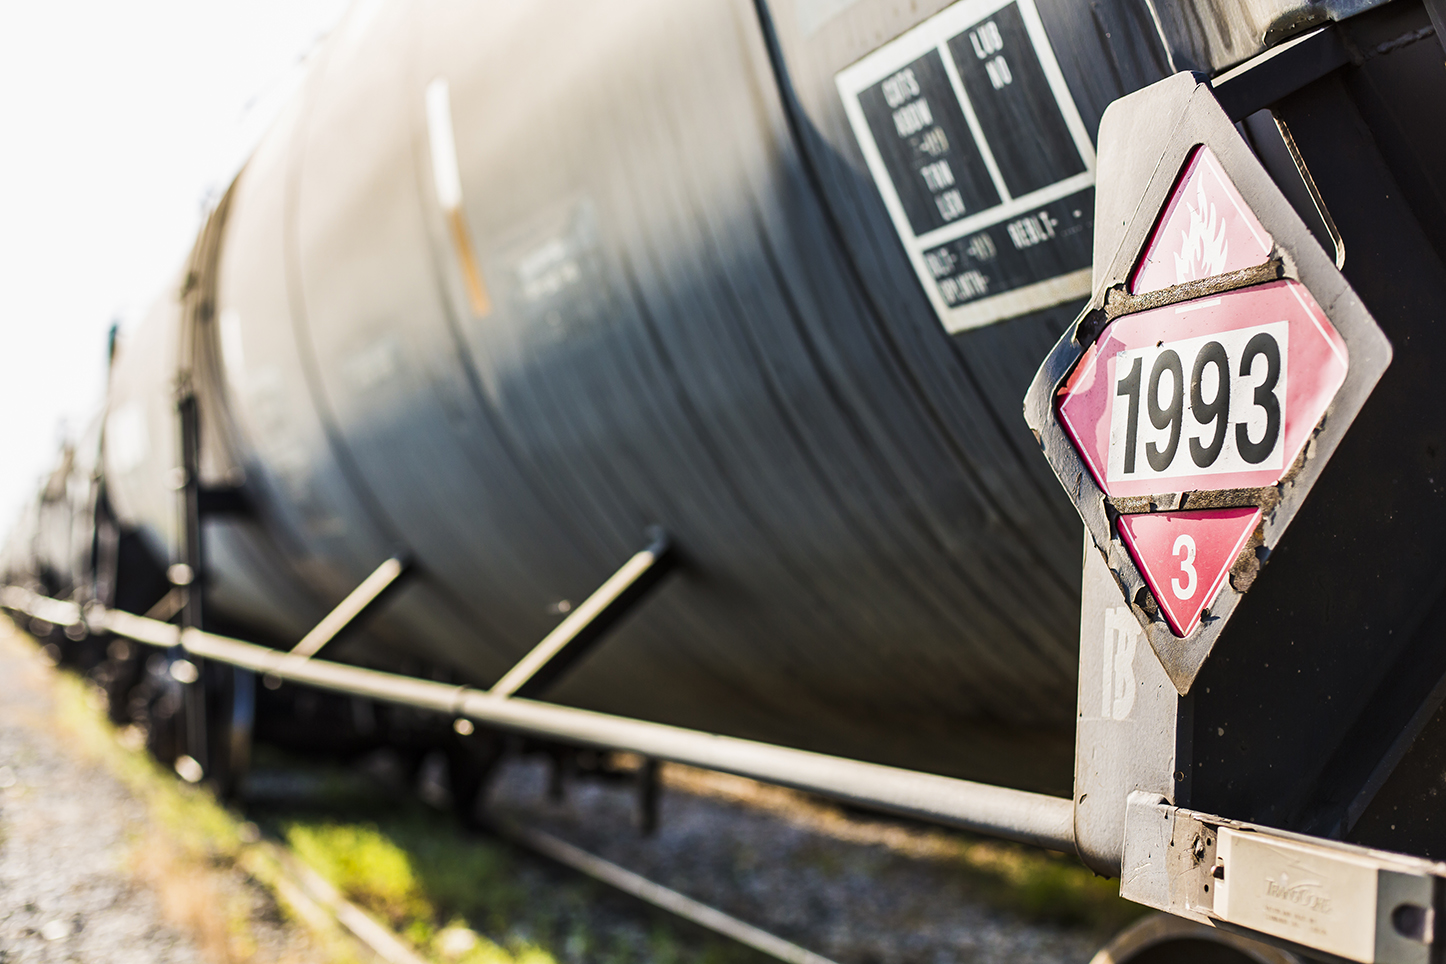 WHO HAS THE POWER? While all parties agree that new industry standards for stronger, safer tank car designs are needed, there is disagreement over the extent of the design changes and who has authority to mandate those changes.